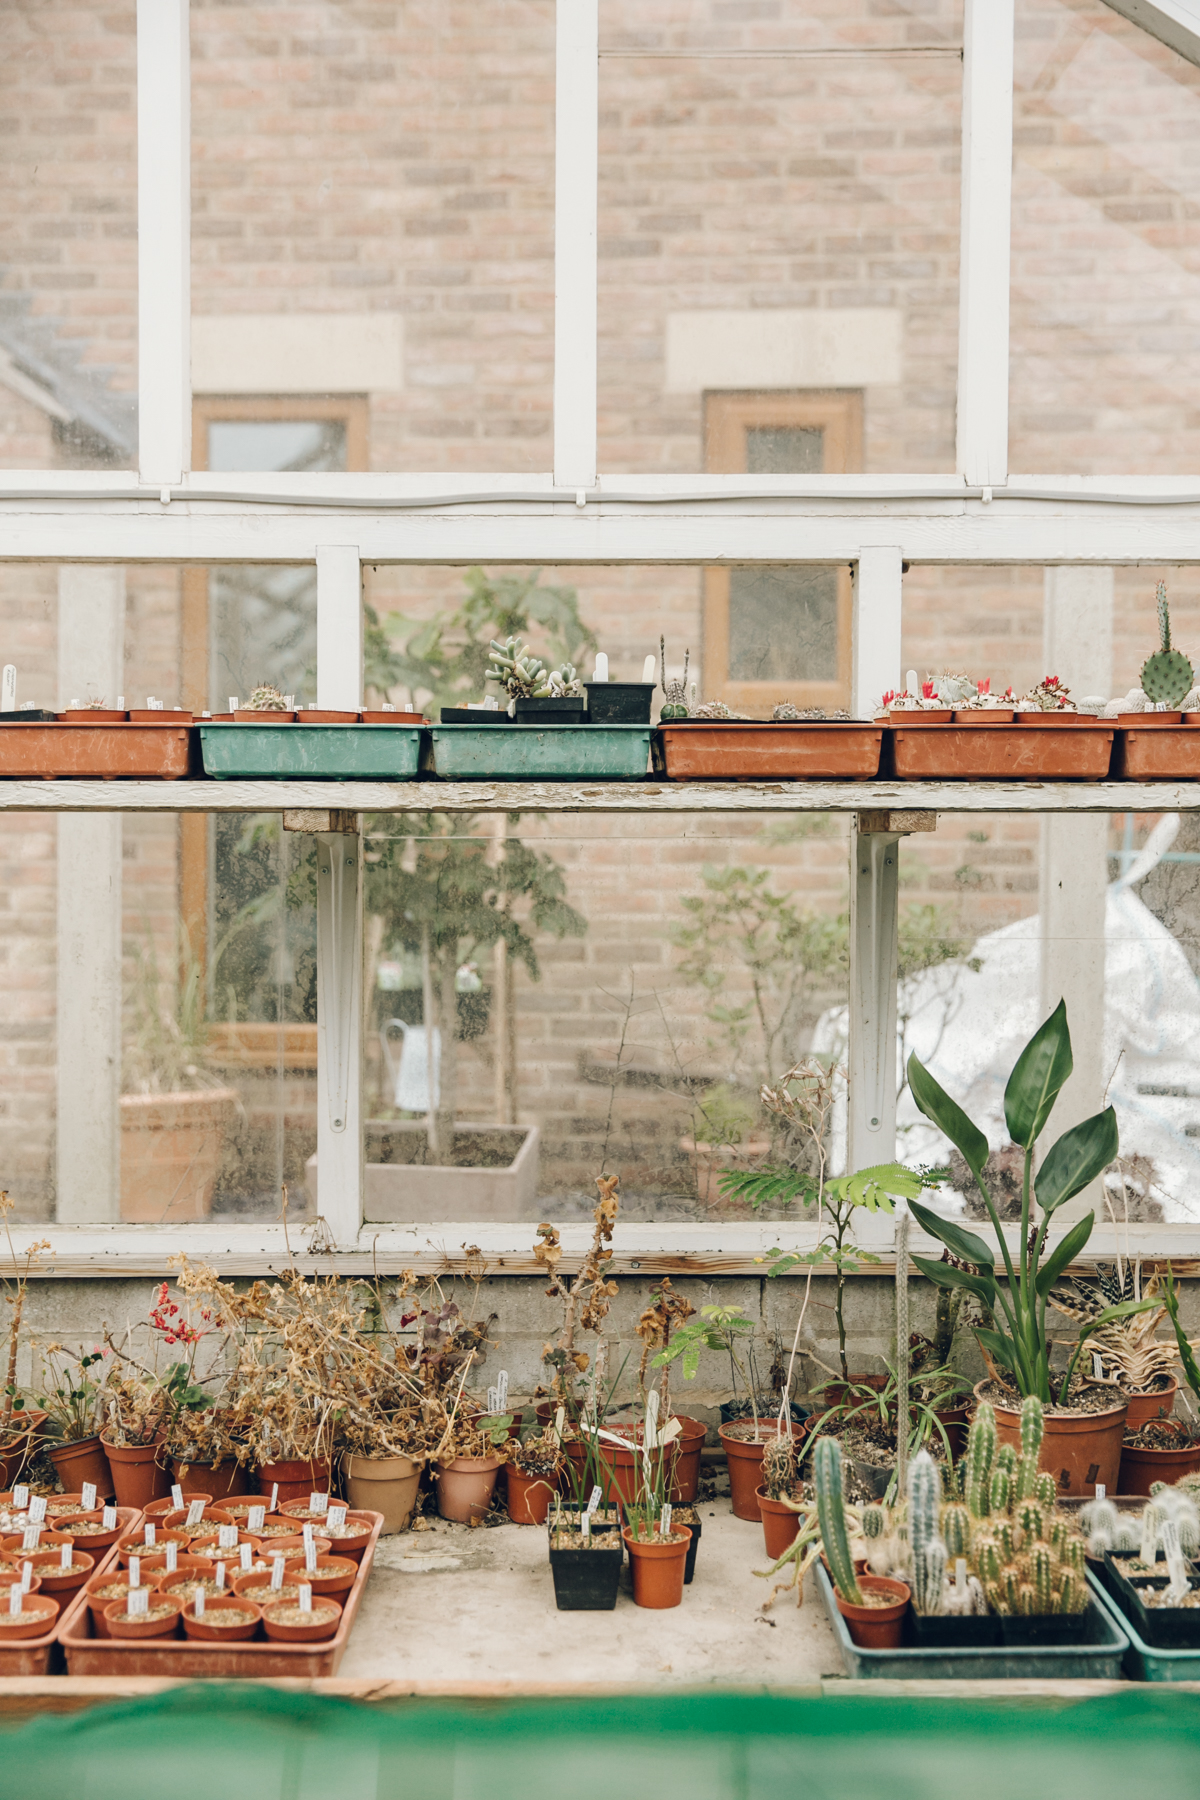 Plants on a shelf at the greenhouse window